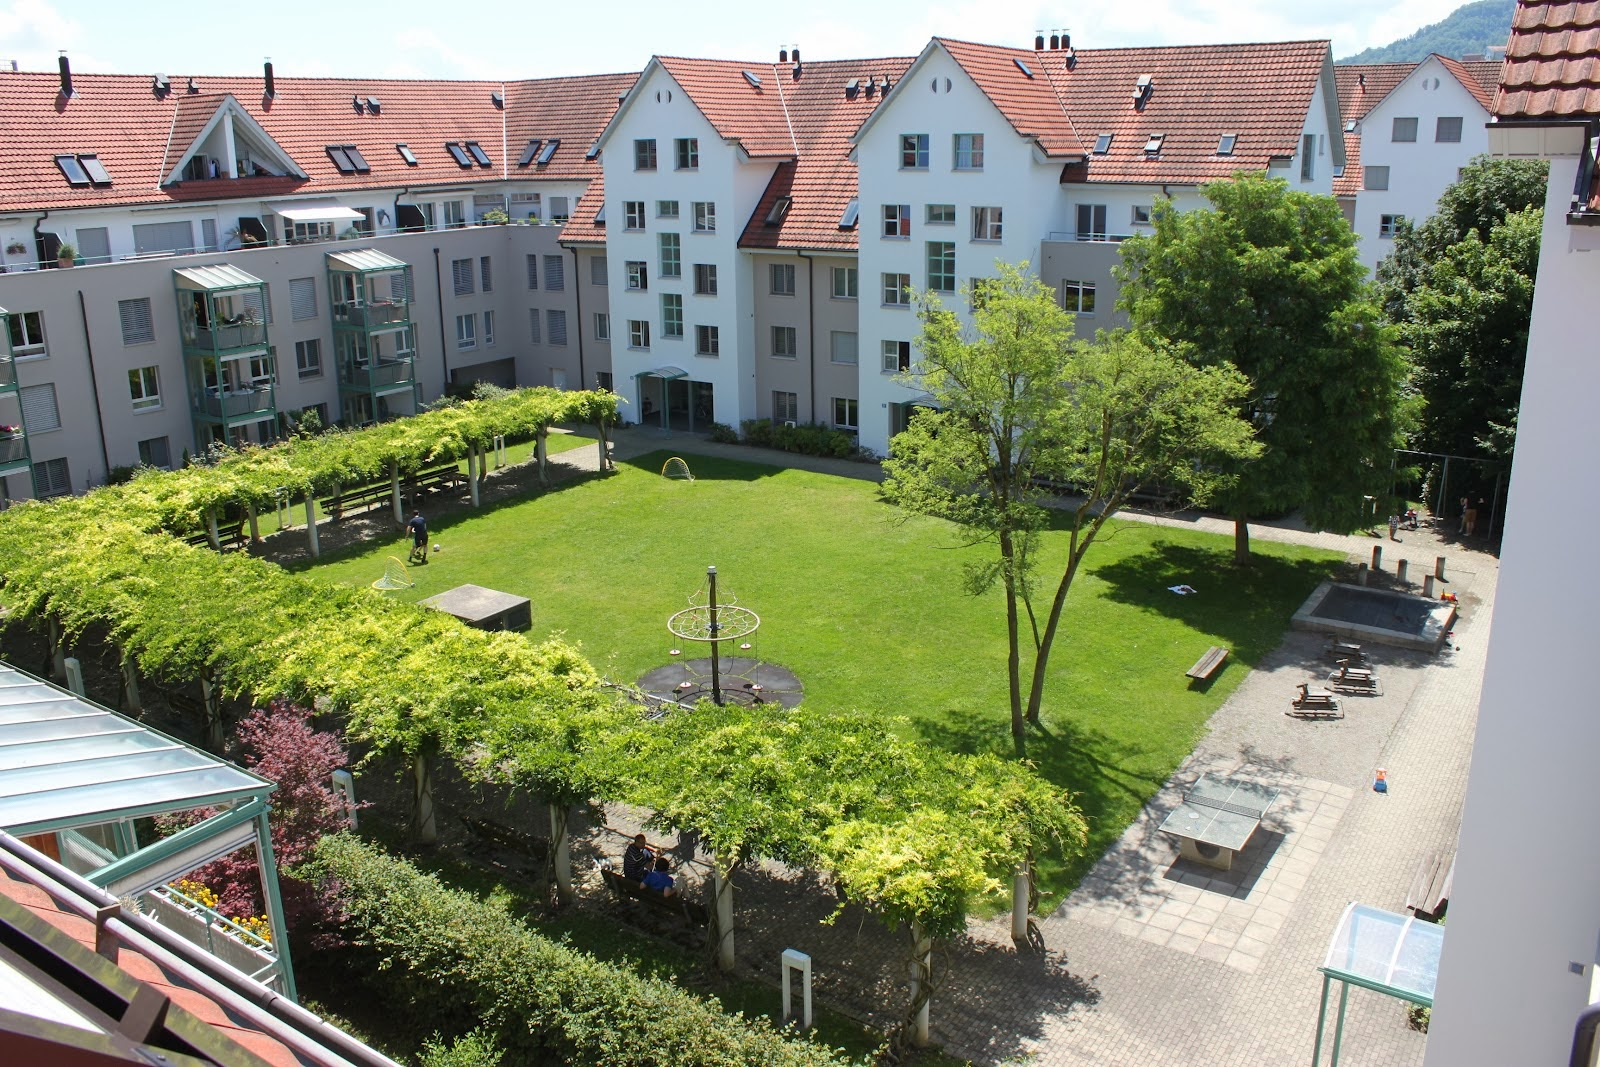 family-friendly courtyard housing in Zurich